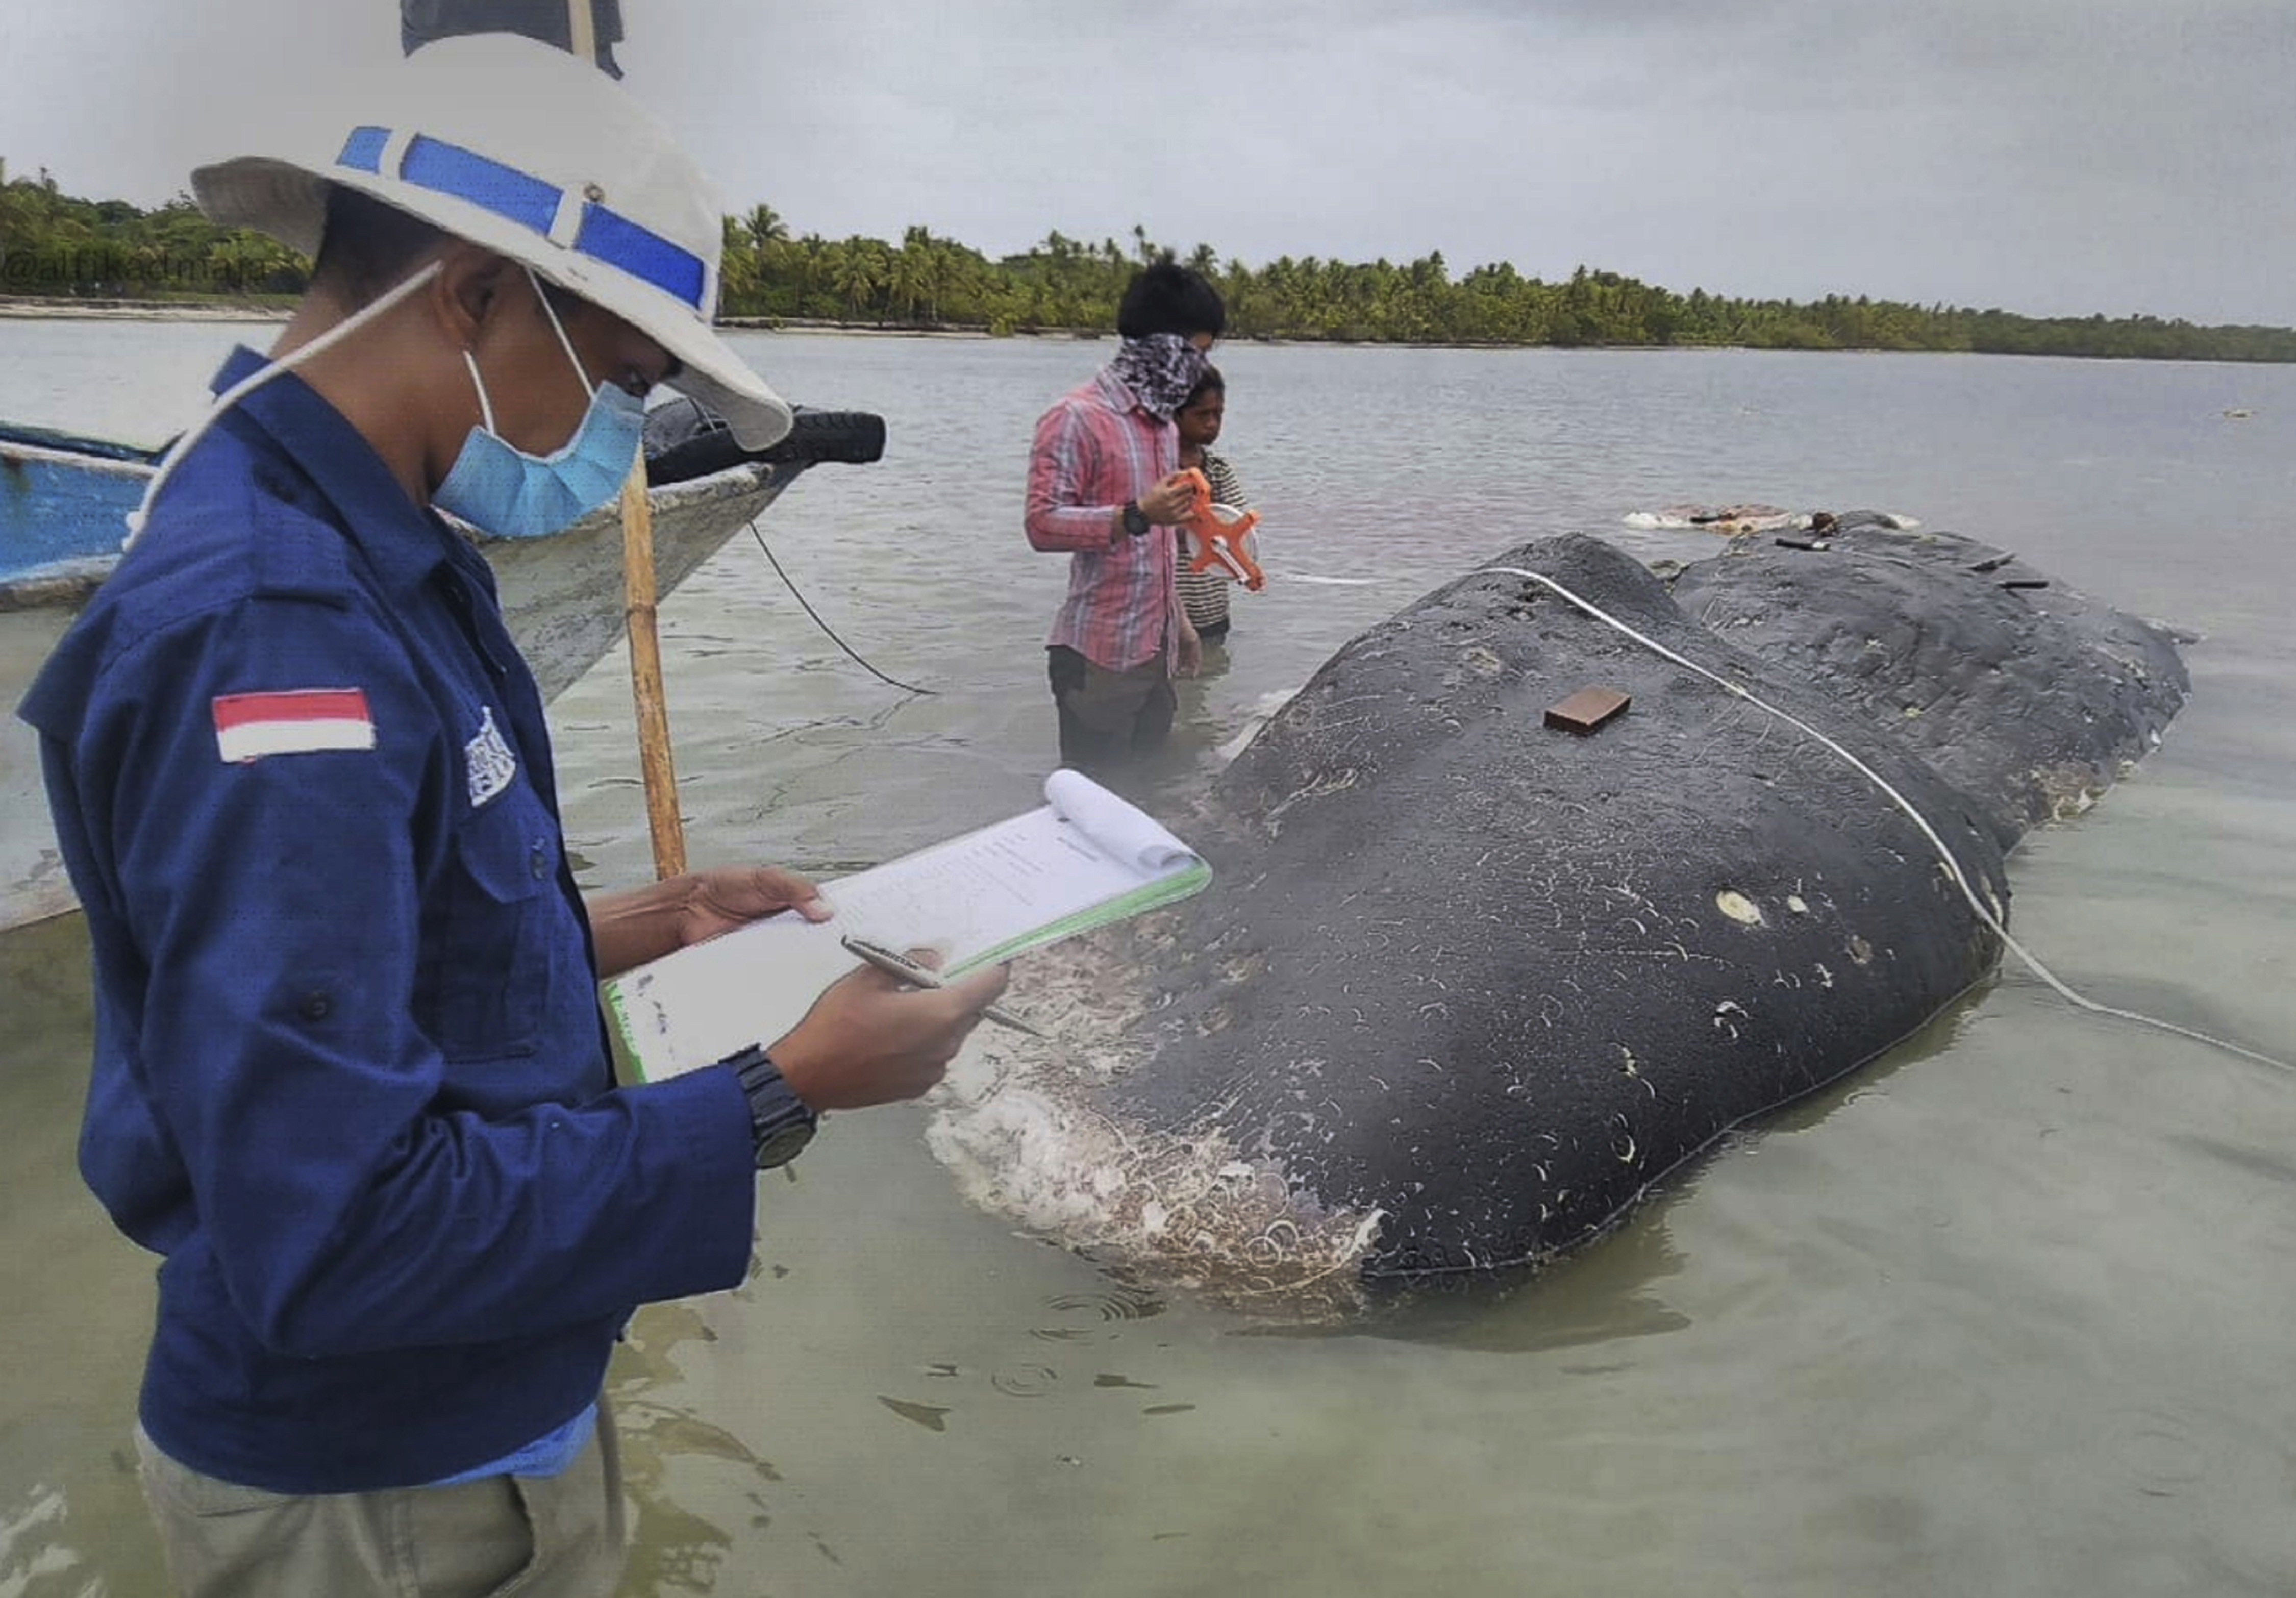 Dead whale washes ashore in Indonesia with 115 plastic cups